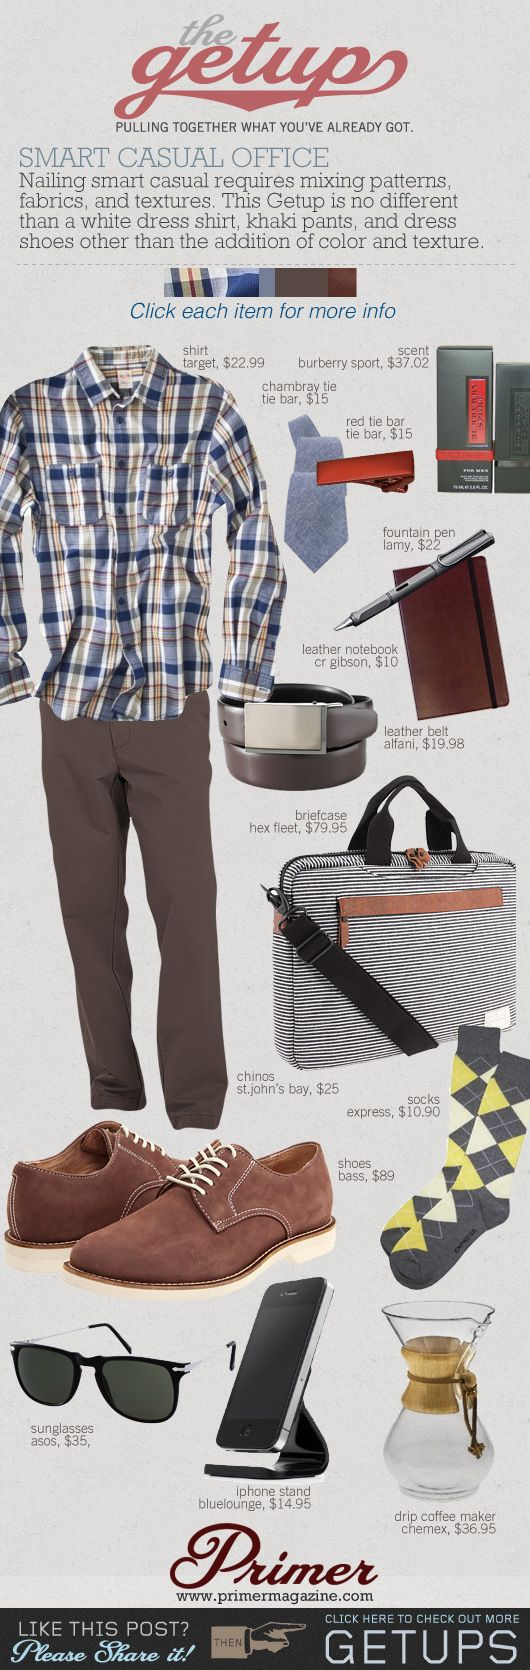 The Getup: Smart Casual Office   Primer    That's a pretty casual office.  I'd totally wear that on the weekend though.  Once things cool down a bit.